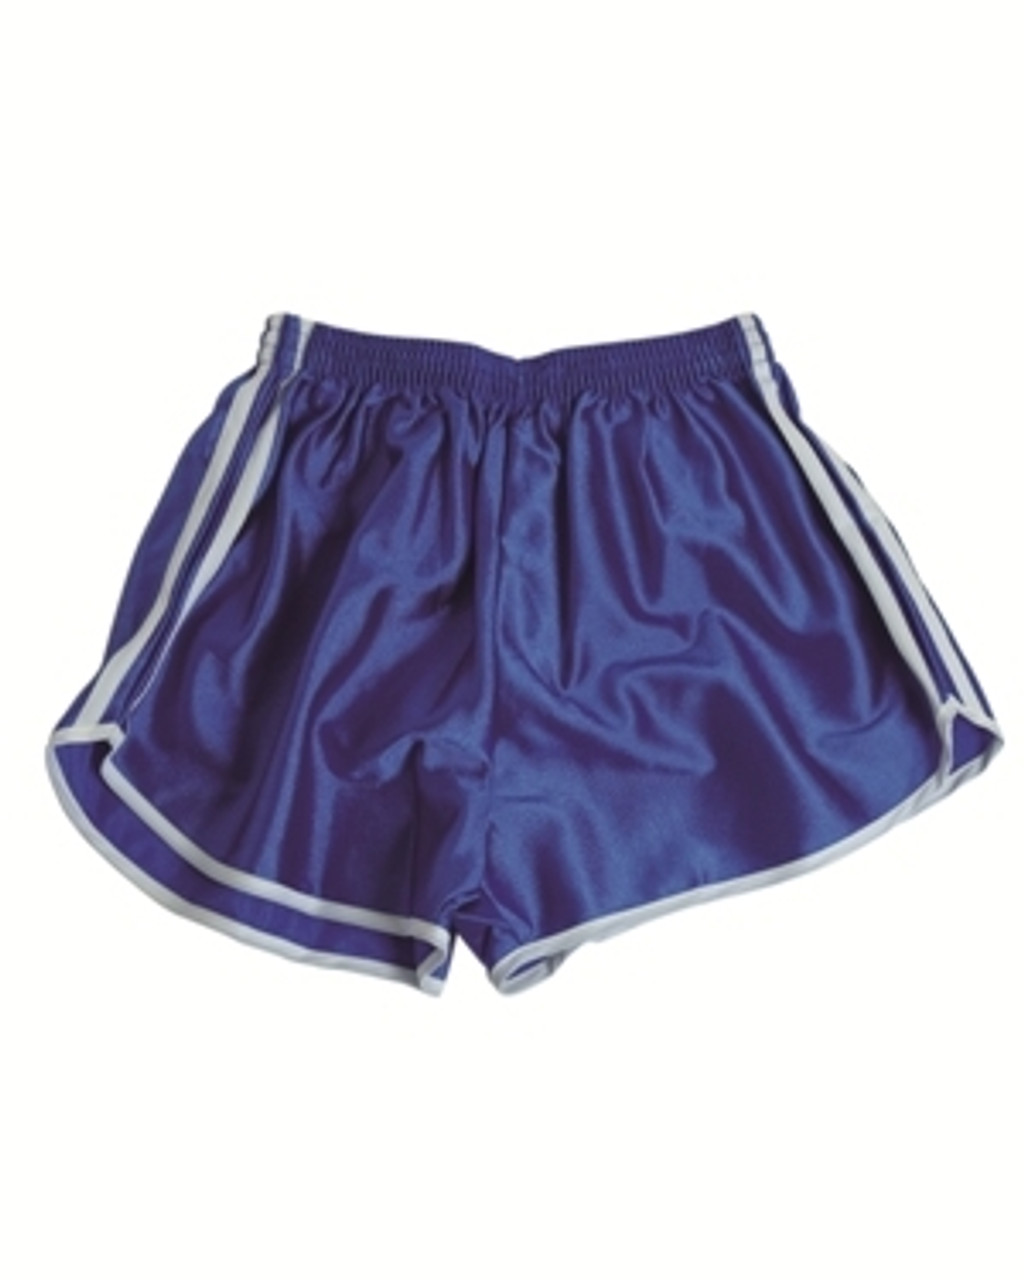 French Blue Polyamide GYM Shorts from Hessen Surplus